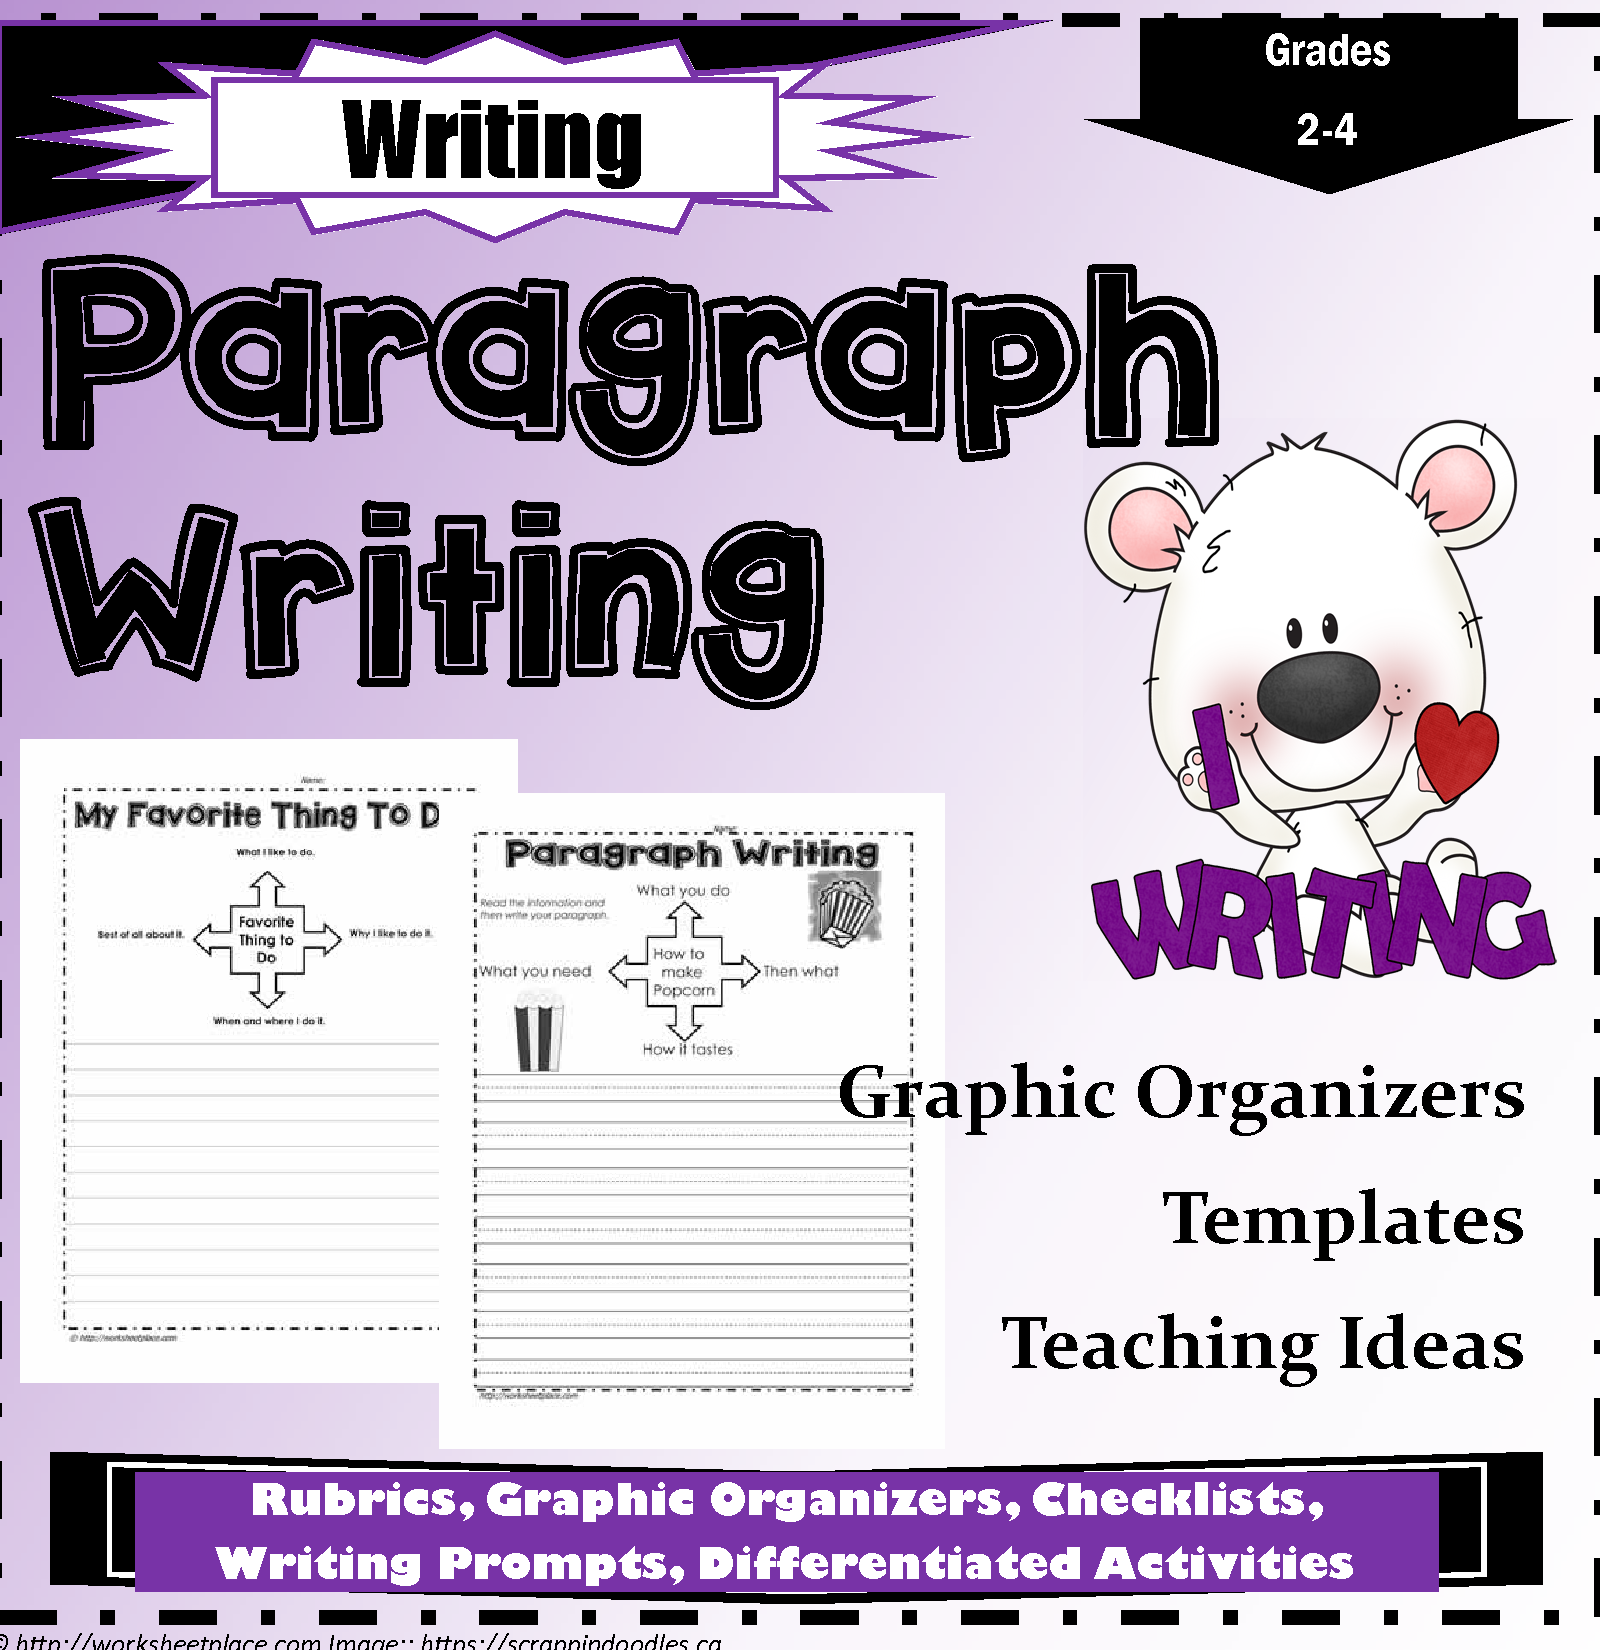 Teaching Kids About Writing Paragraph Resources Templates And Worksheets Lots Of Graphic Or Paragraph Writing Paragraph Worksheets Graphic Organizer Template [ 1650 x 1600 Pixel ]